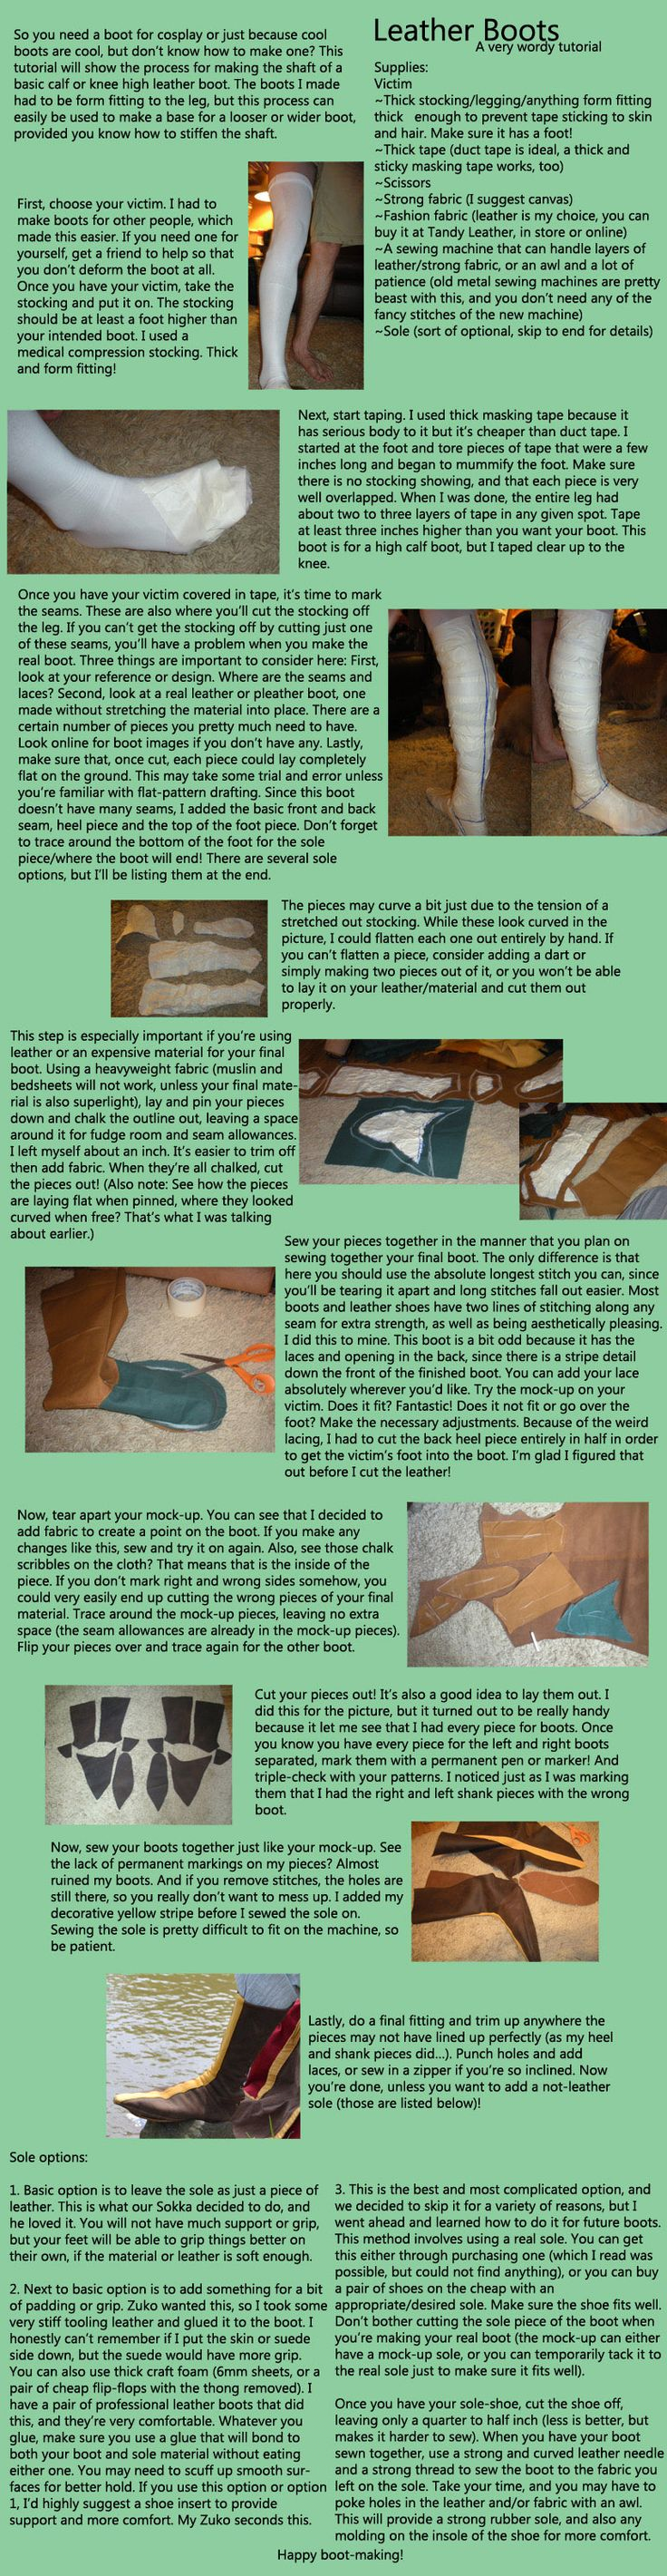 Leather Boot Tutorial by HarmonicCosplay.deviantart.com on @deviantART